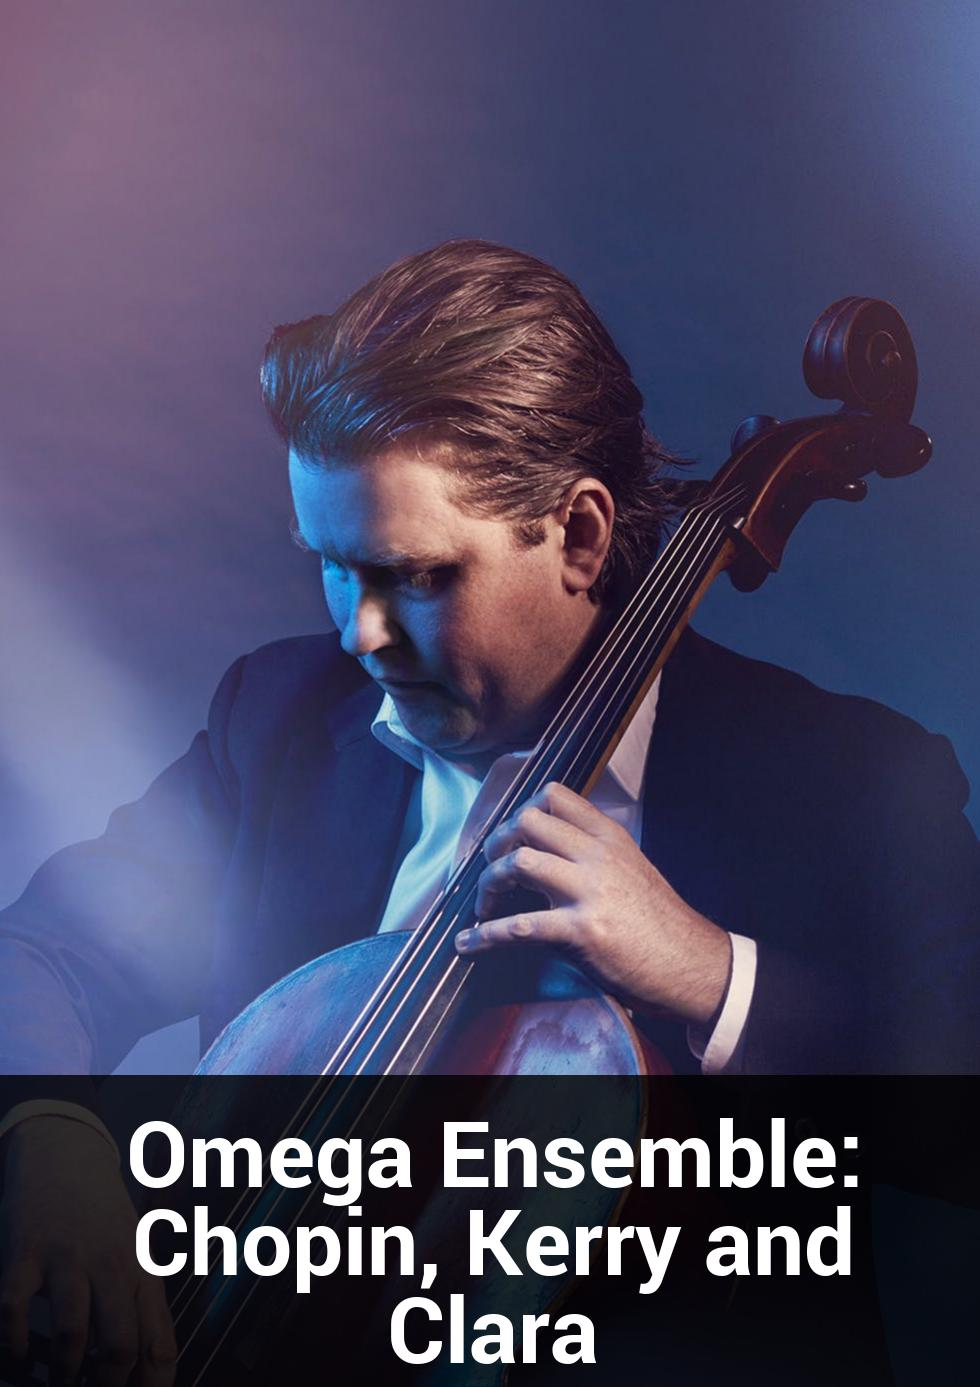 Omega Ensemble: Chopin, Kerry and Clara at Melbourne Recital Centre